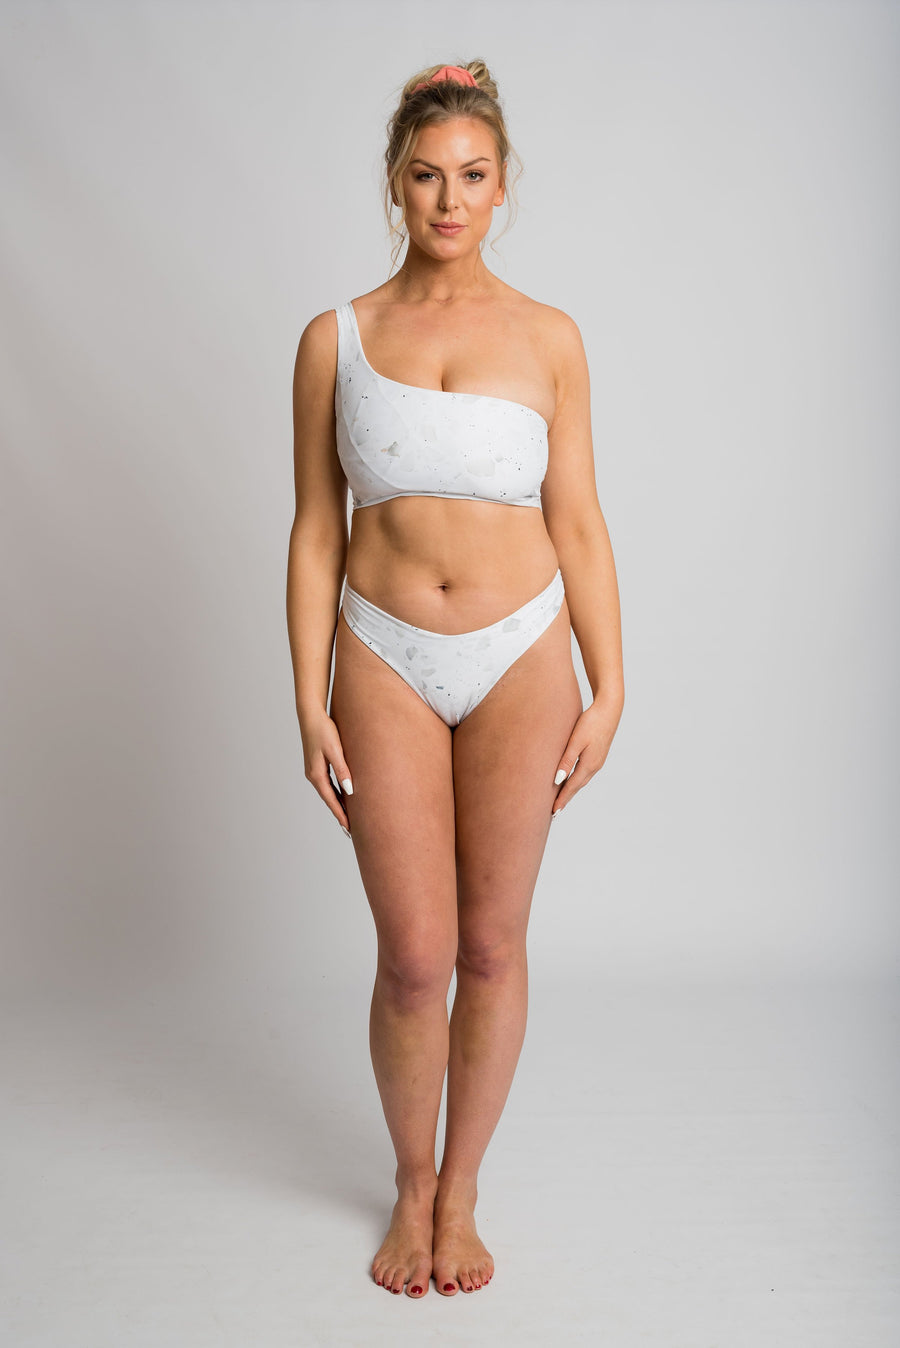 Ethical and sustainable swimwear for women xxs to plus size, recycled ECONYL reversible cheeky bikini bottom ethically made in Australia.